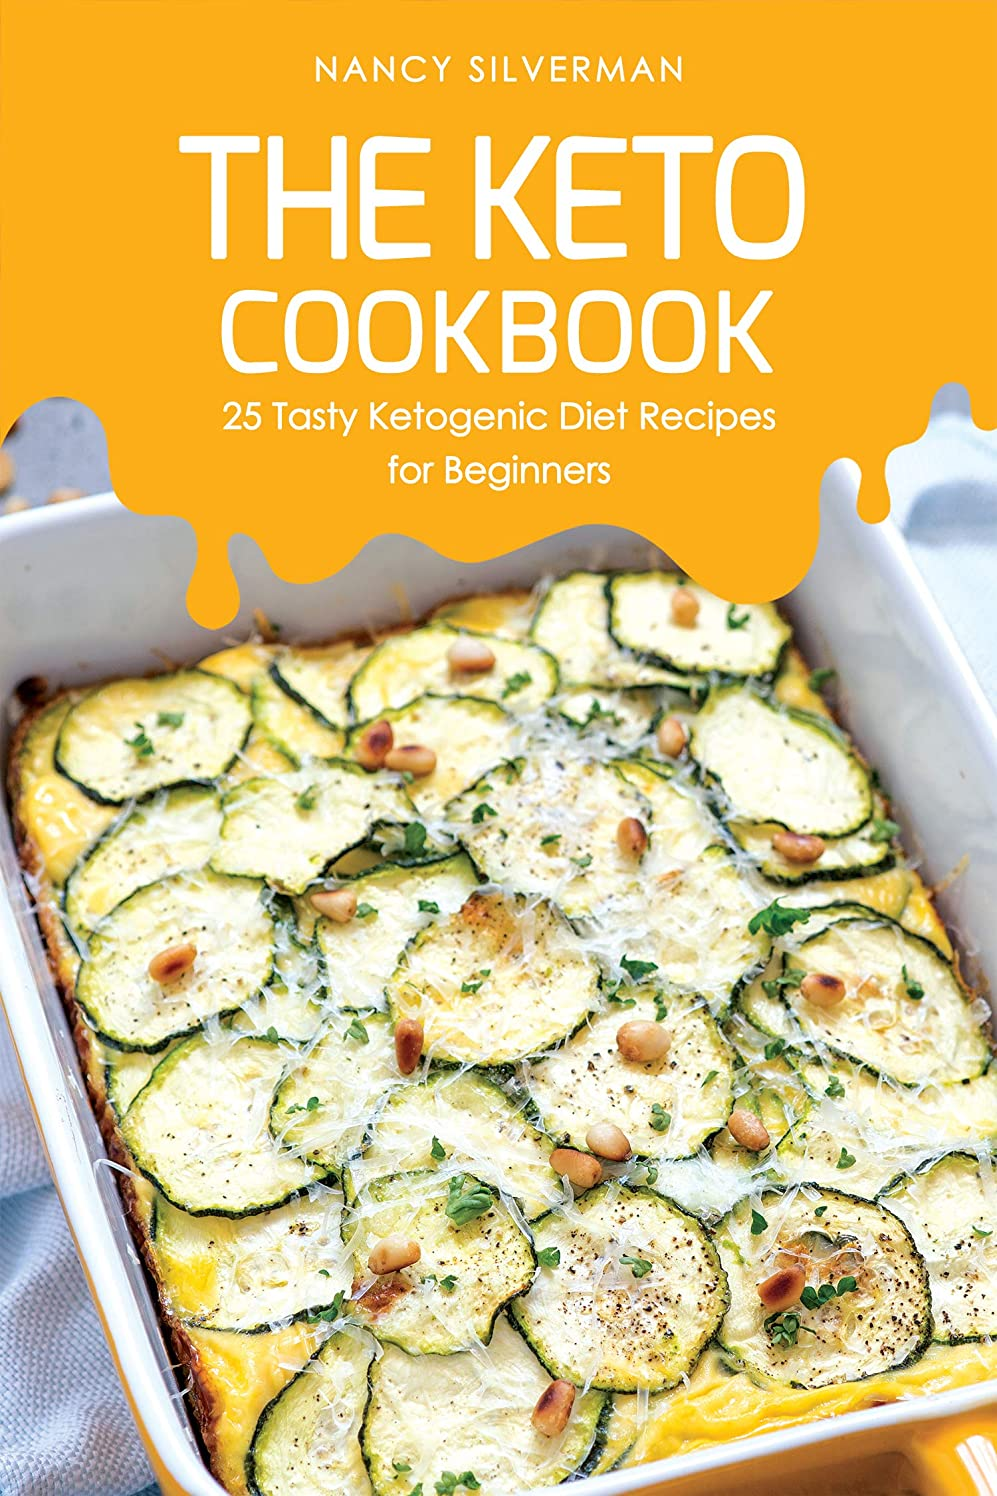 The Keto Cookbook: 25 Tasty Ketogenic Diet Recipes for Beginners (English Edition)